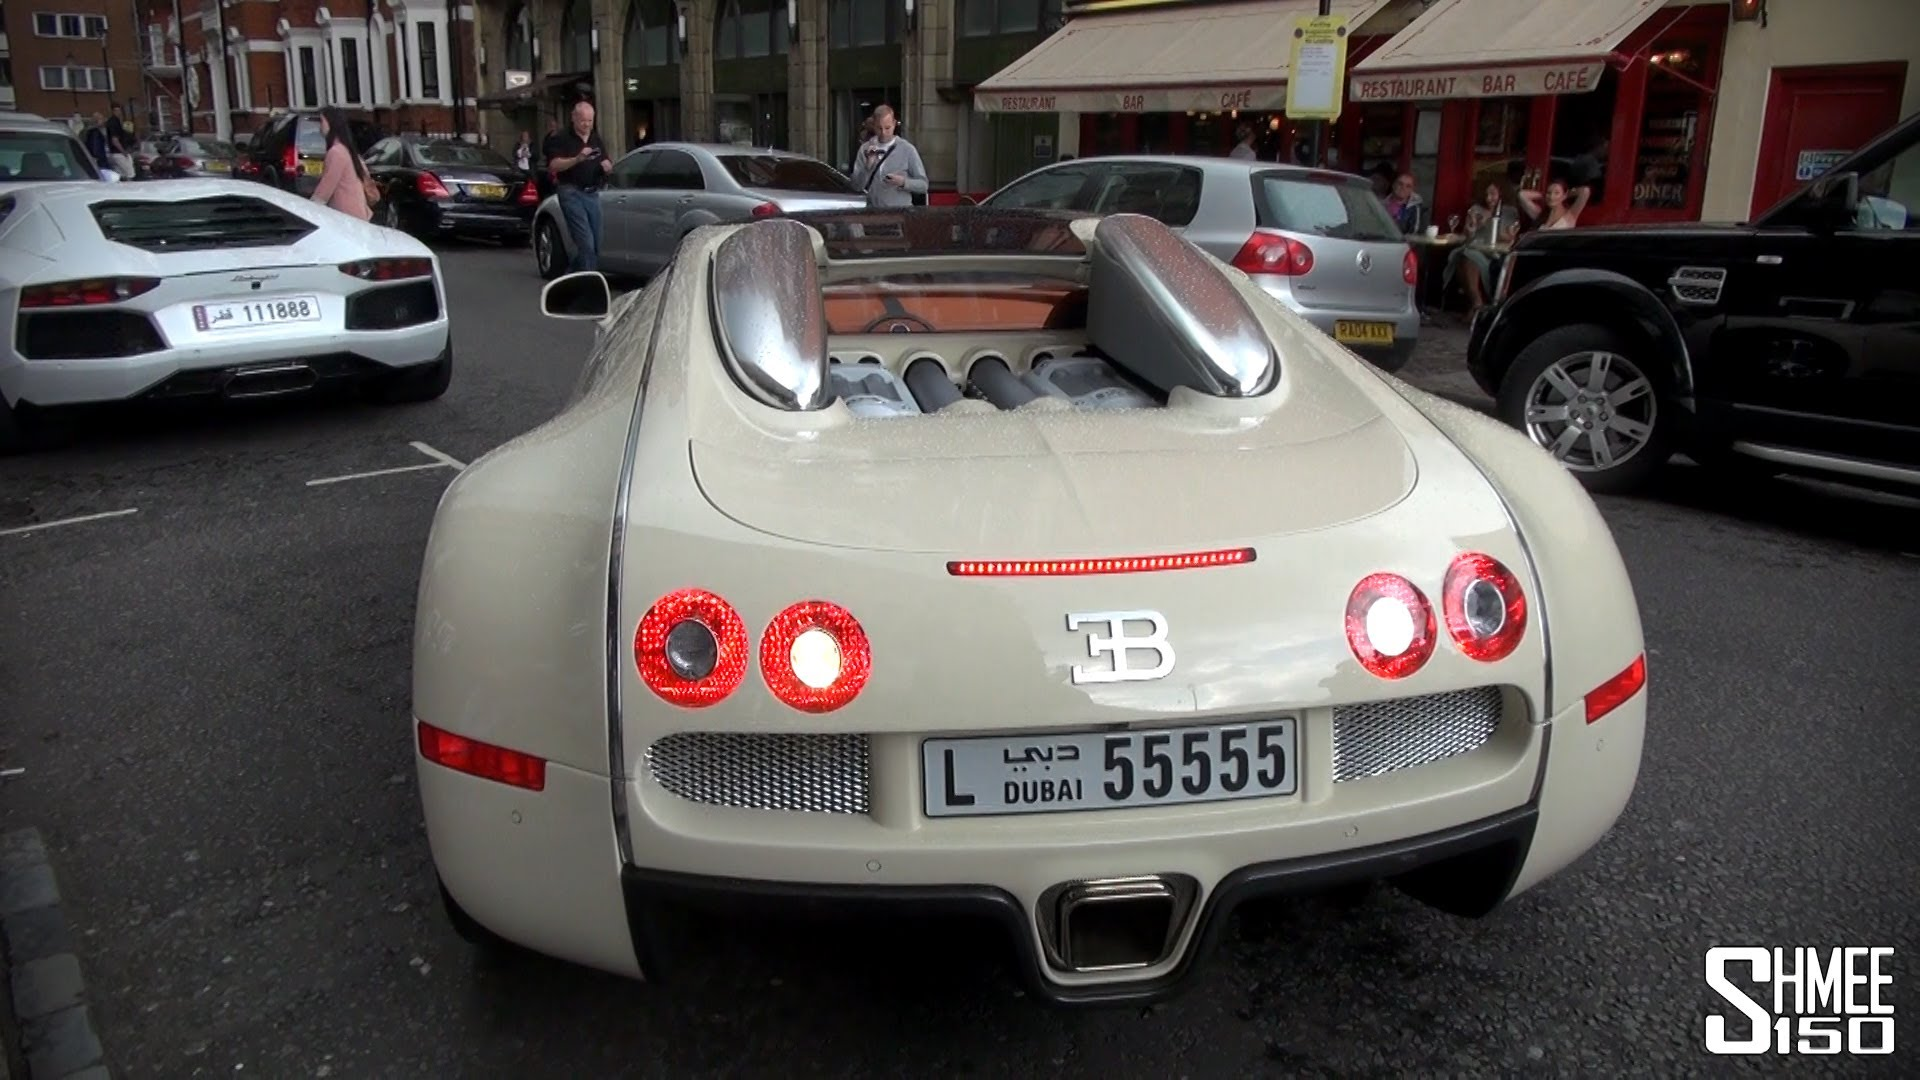 Rich Dude Abandons His Bugatti Veyron In London Street